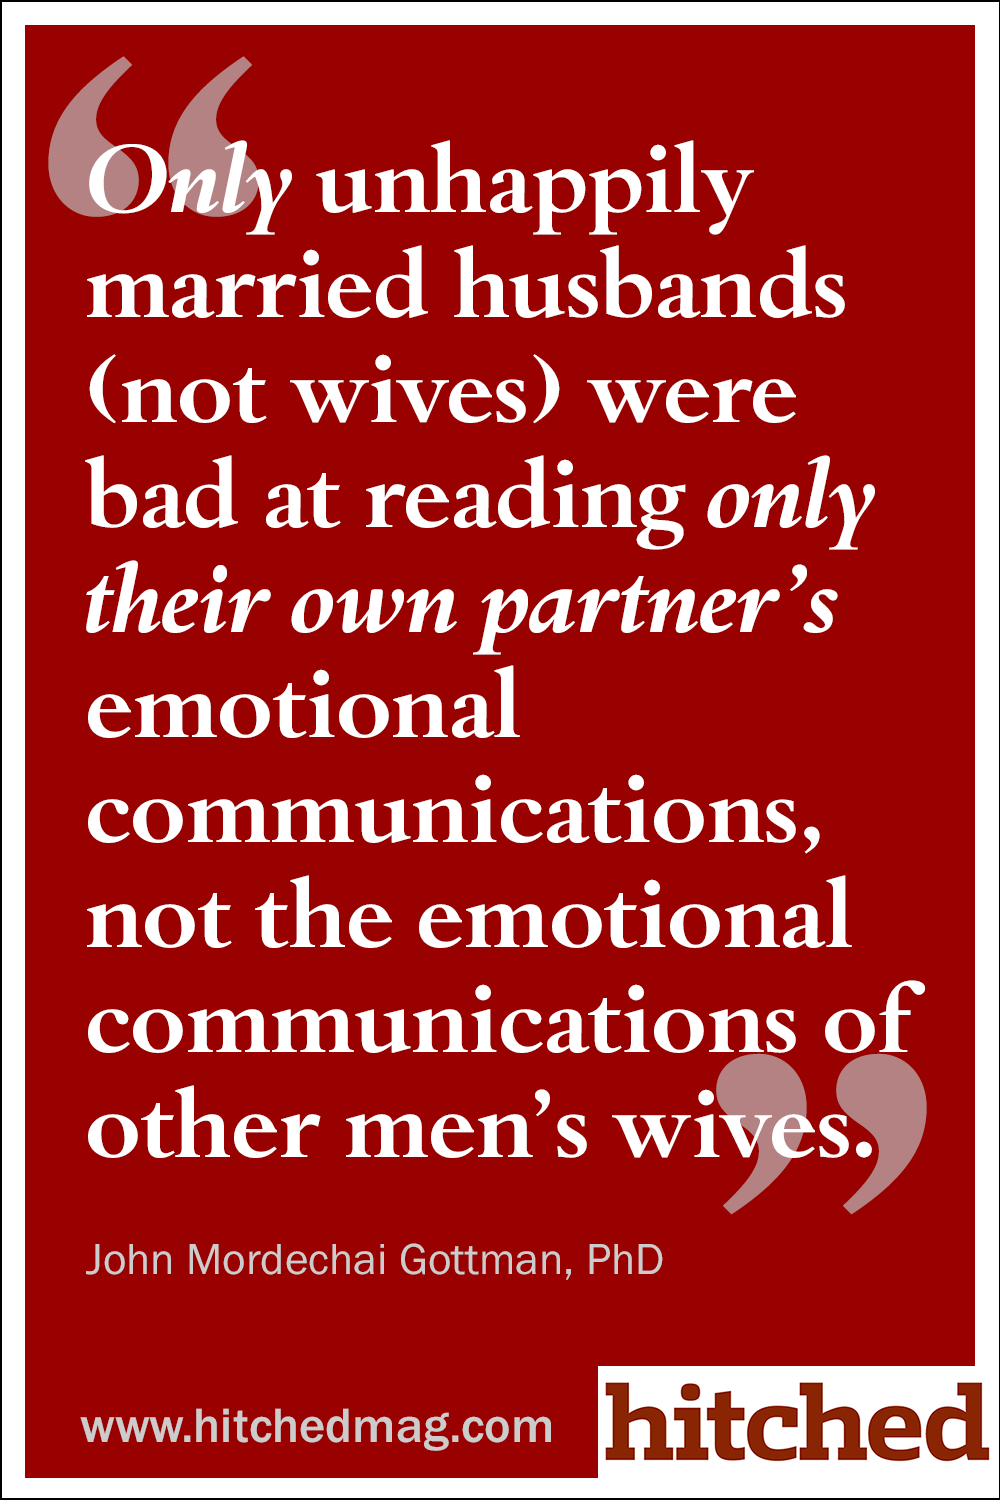 """""""Only unhappily married husbands (not wives) were bad at reading only their own partner's emotional communications, not the emotional communications of other men's wives."""""""